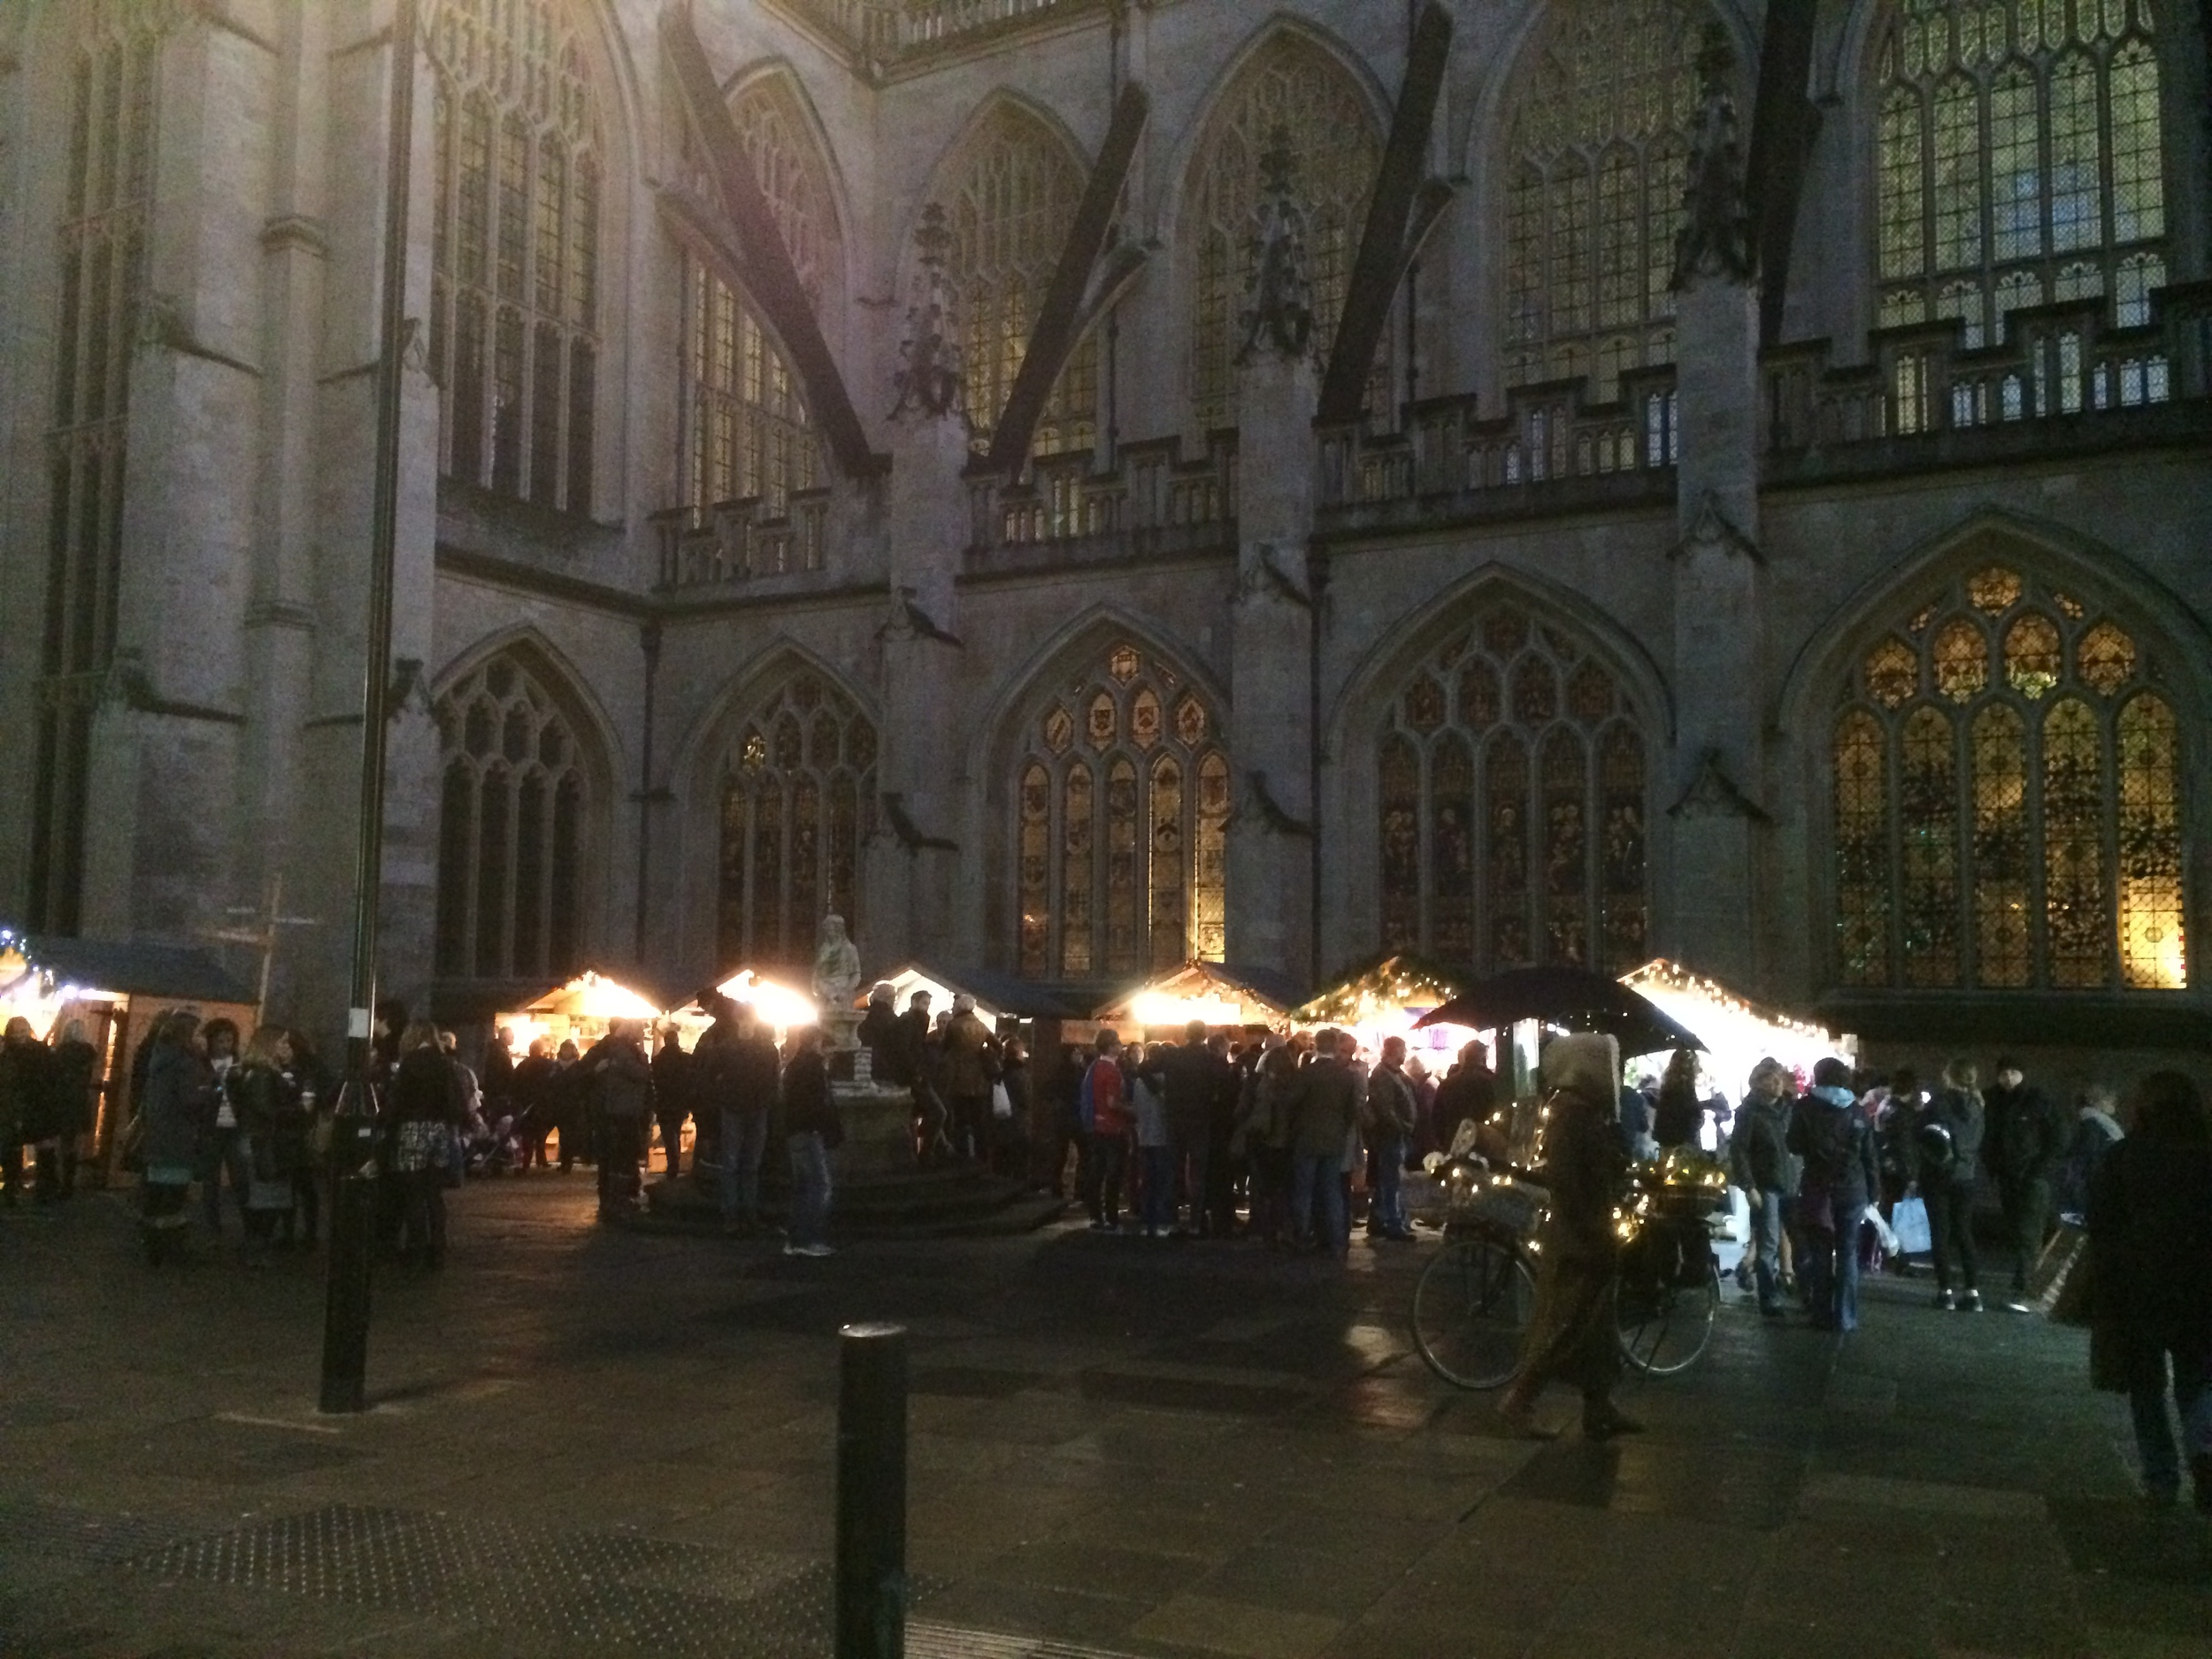 A rare shot of the Christmas market at twilight in the shadow of the abbey. It was so pretty seeing all the stalls lit up.